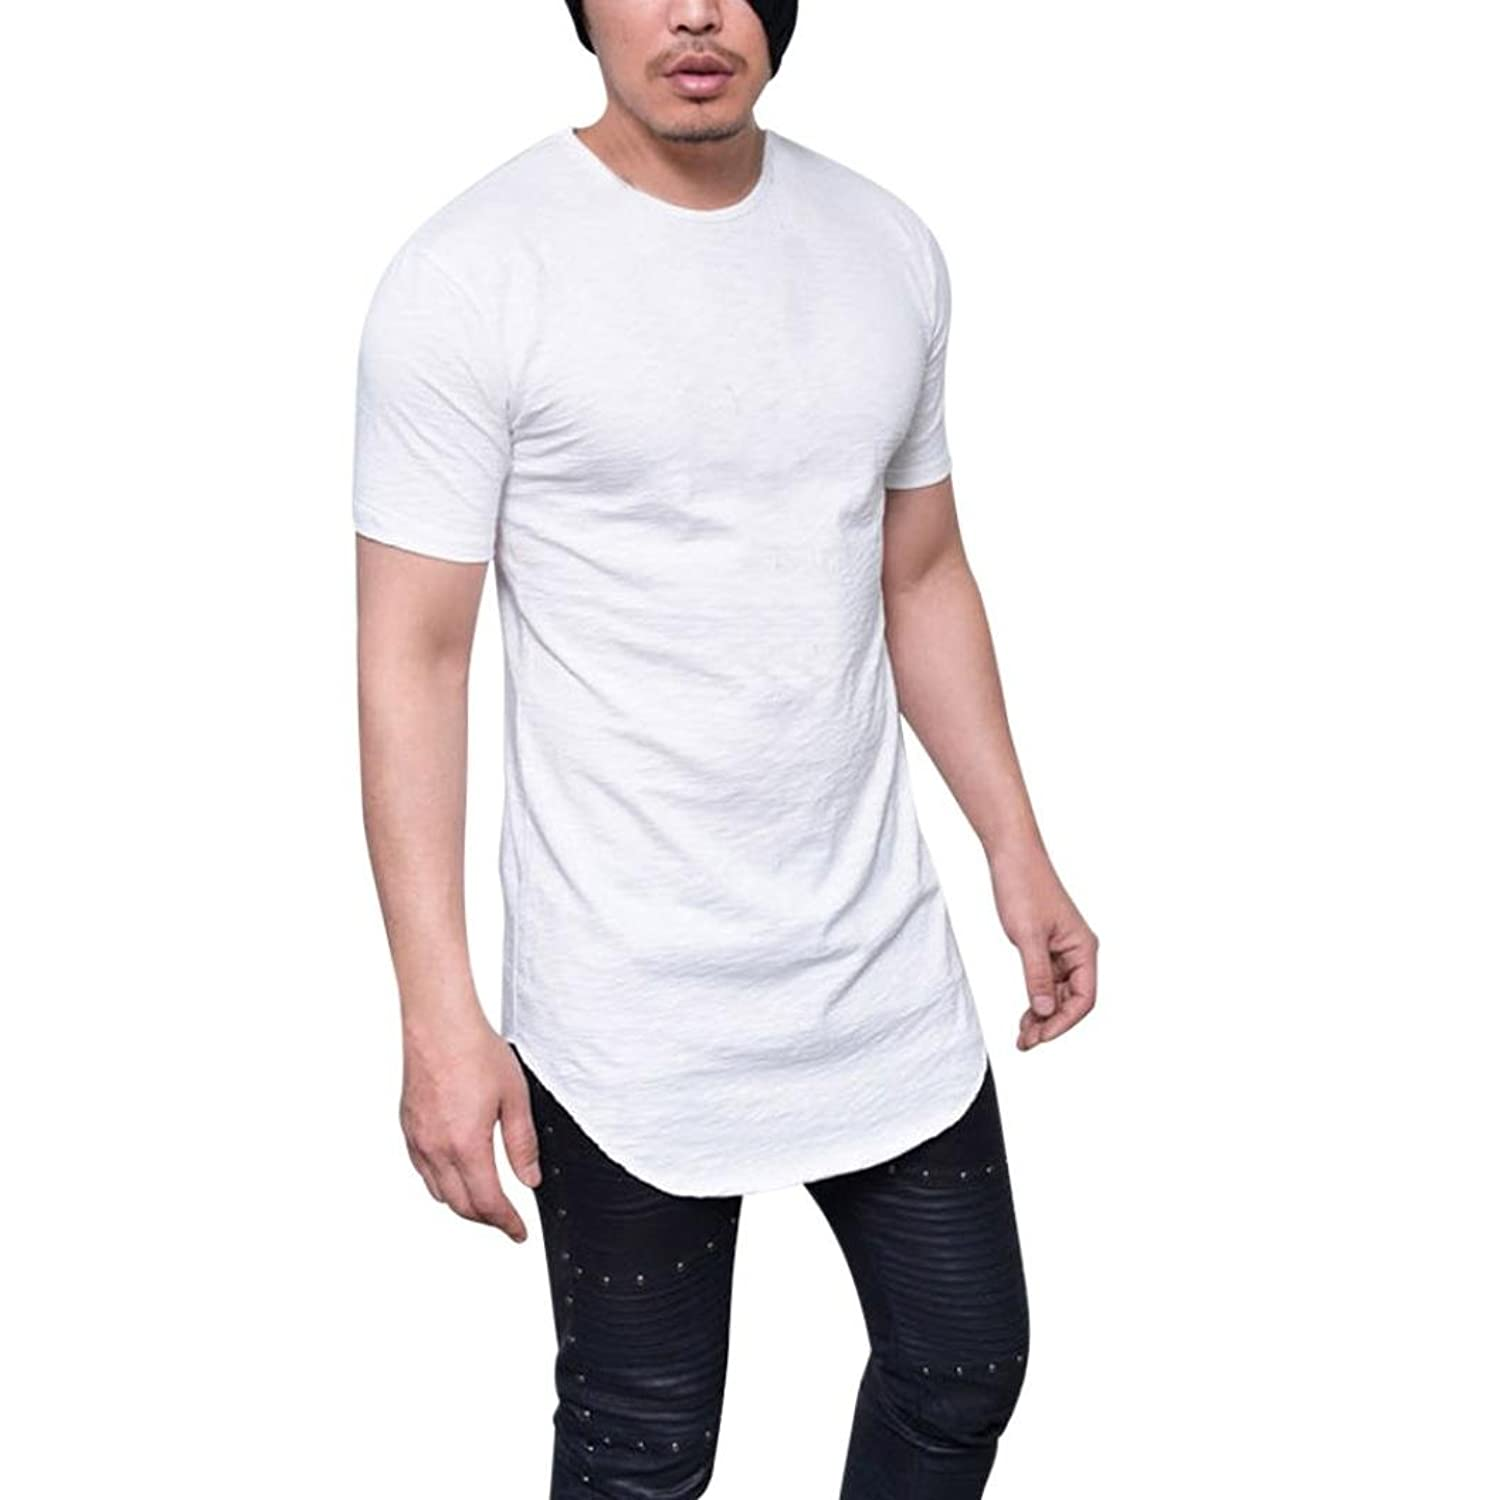 aea1a1286 ☆Casual Tops Men Slim Fit O Neck Short Sleeve Muscle Tee T-shirt Blouse  SPE969 ☆Strength and growth come only through continuous effort and struggle .